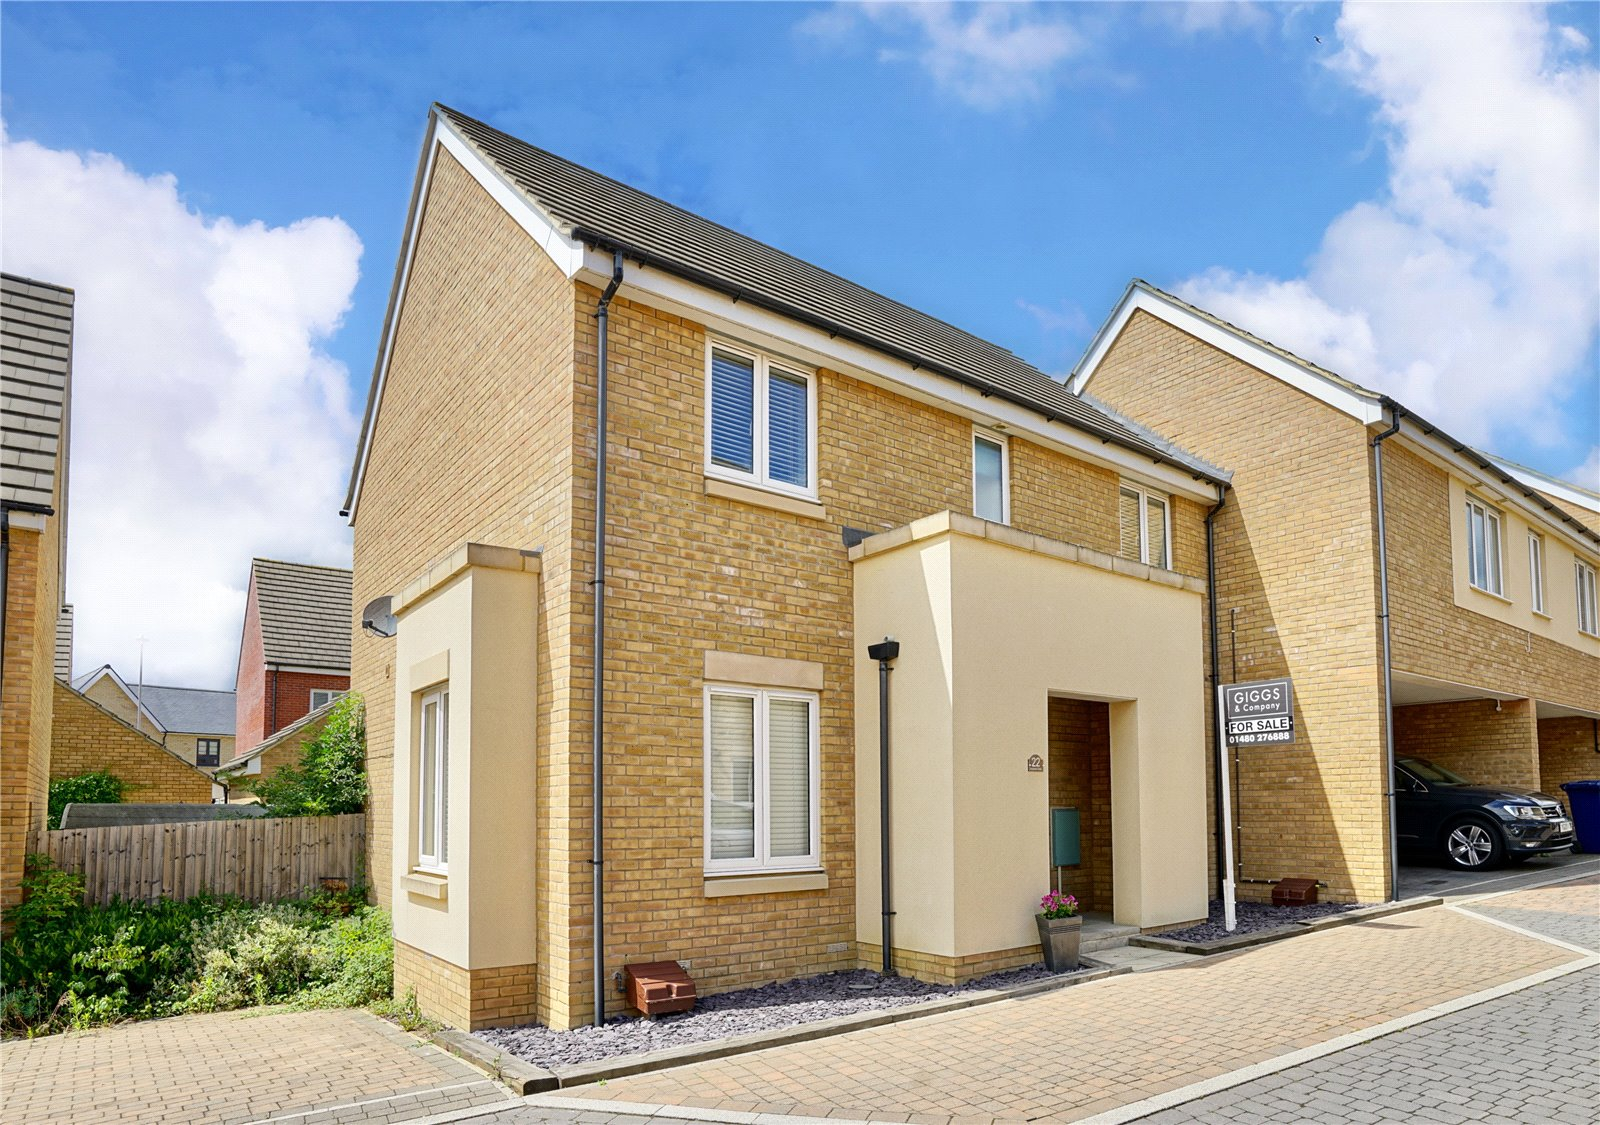 4 bed house for sale in St. Neots, Anderson Close, PE19 6DN 0